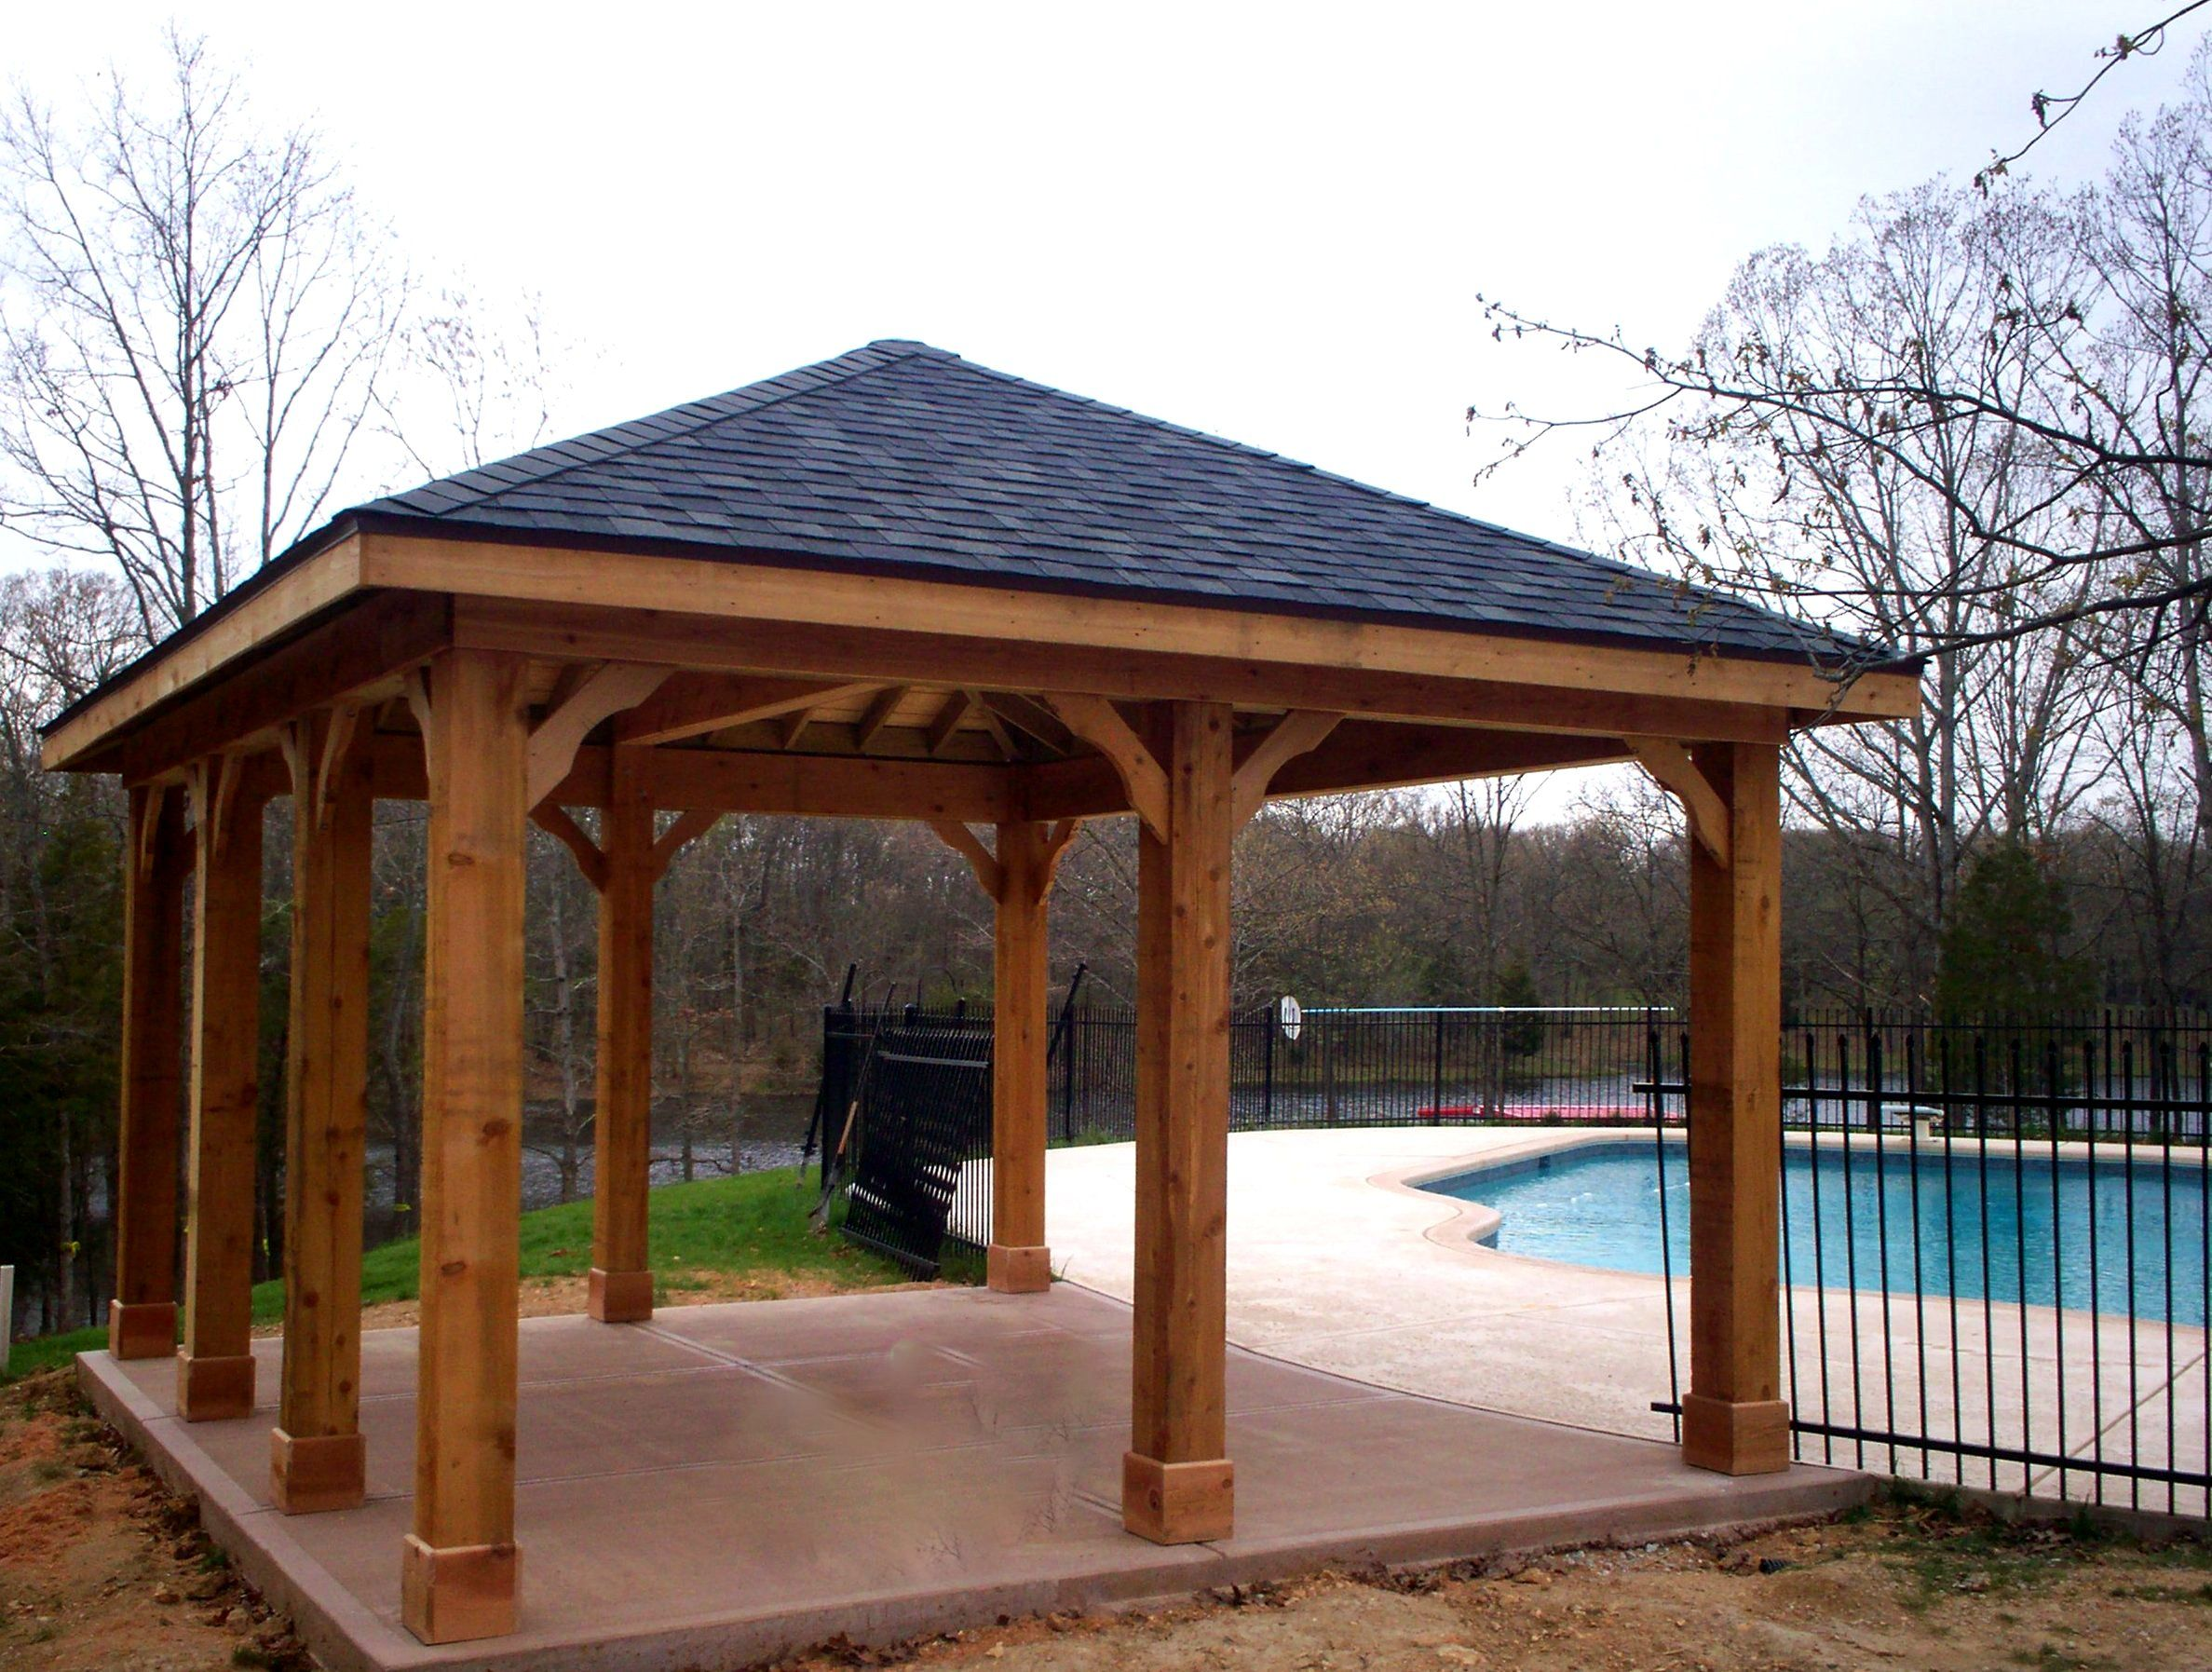 Patio covers for shade and style covered patio design for Small patio shade ideas